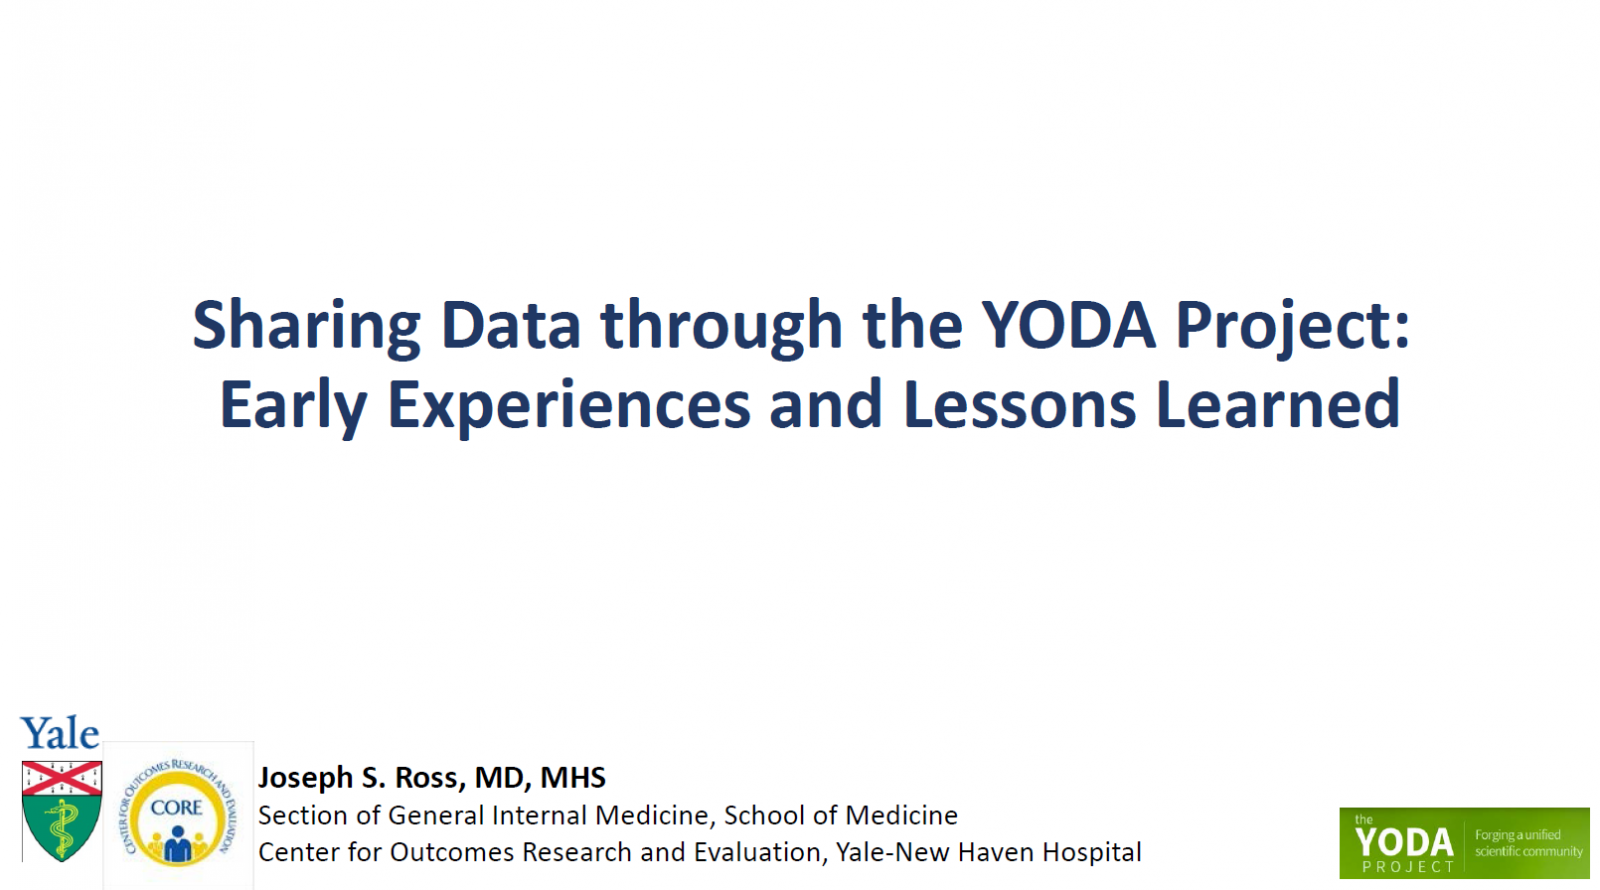 Sharing Data through the YODA Project: Early Experiences and Lessons Learned